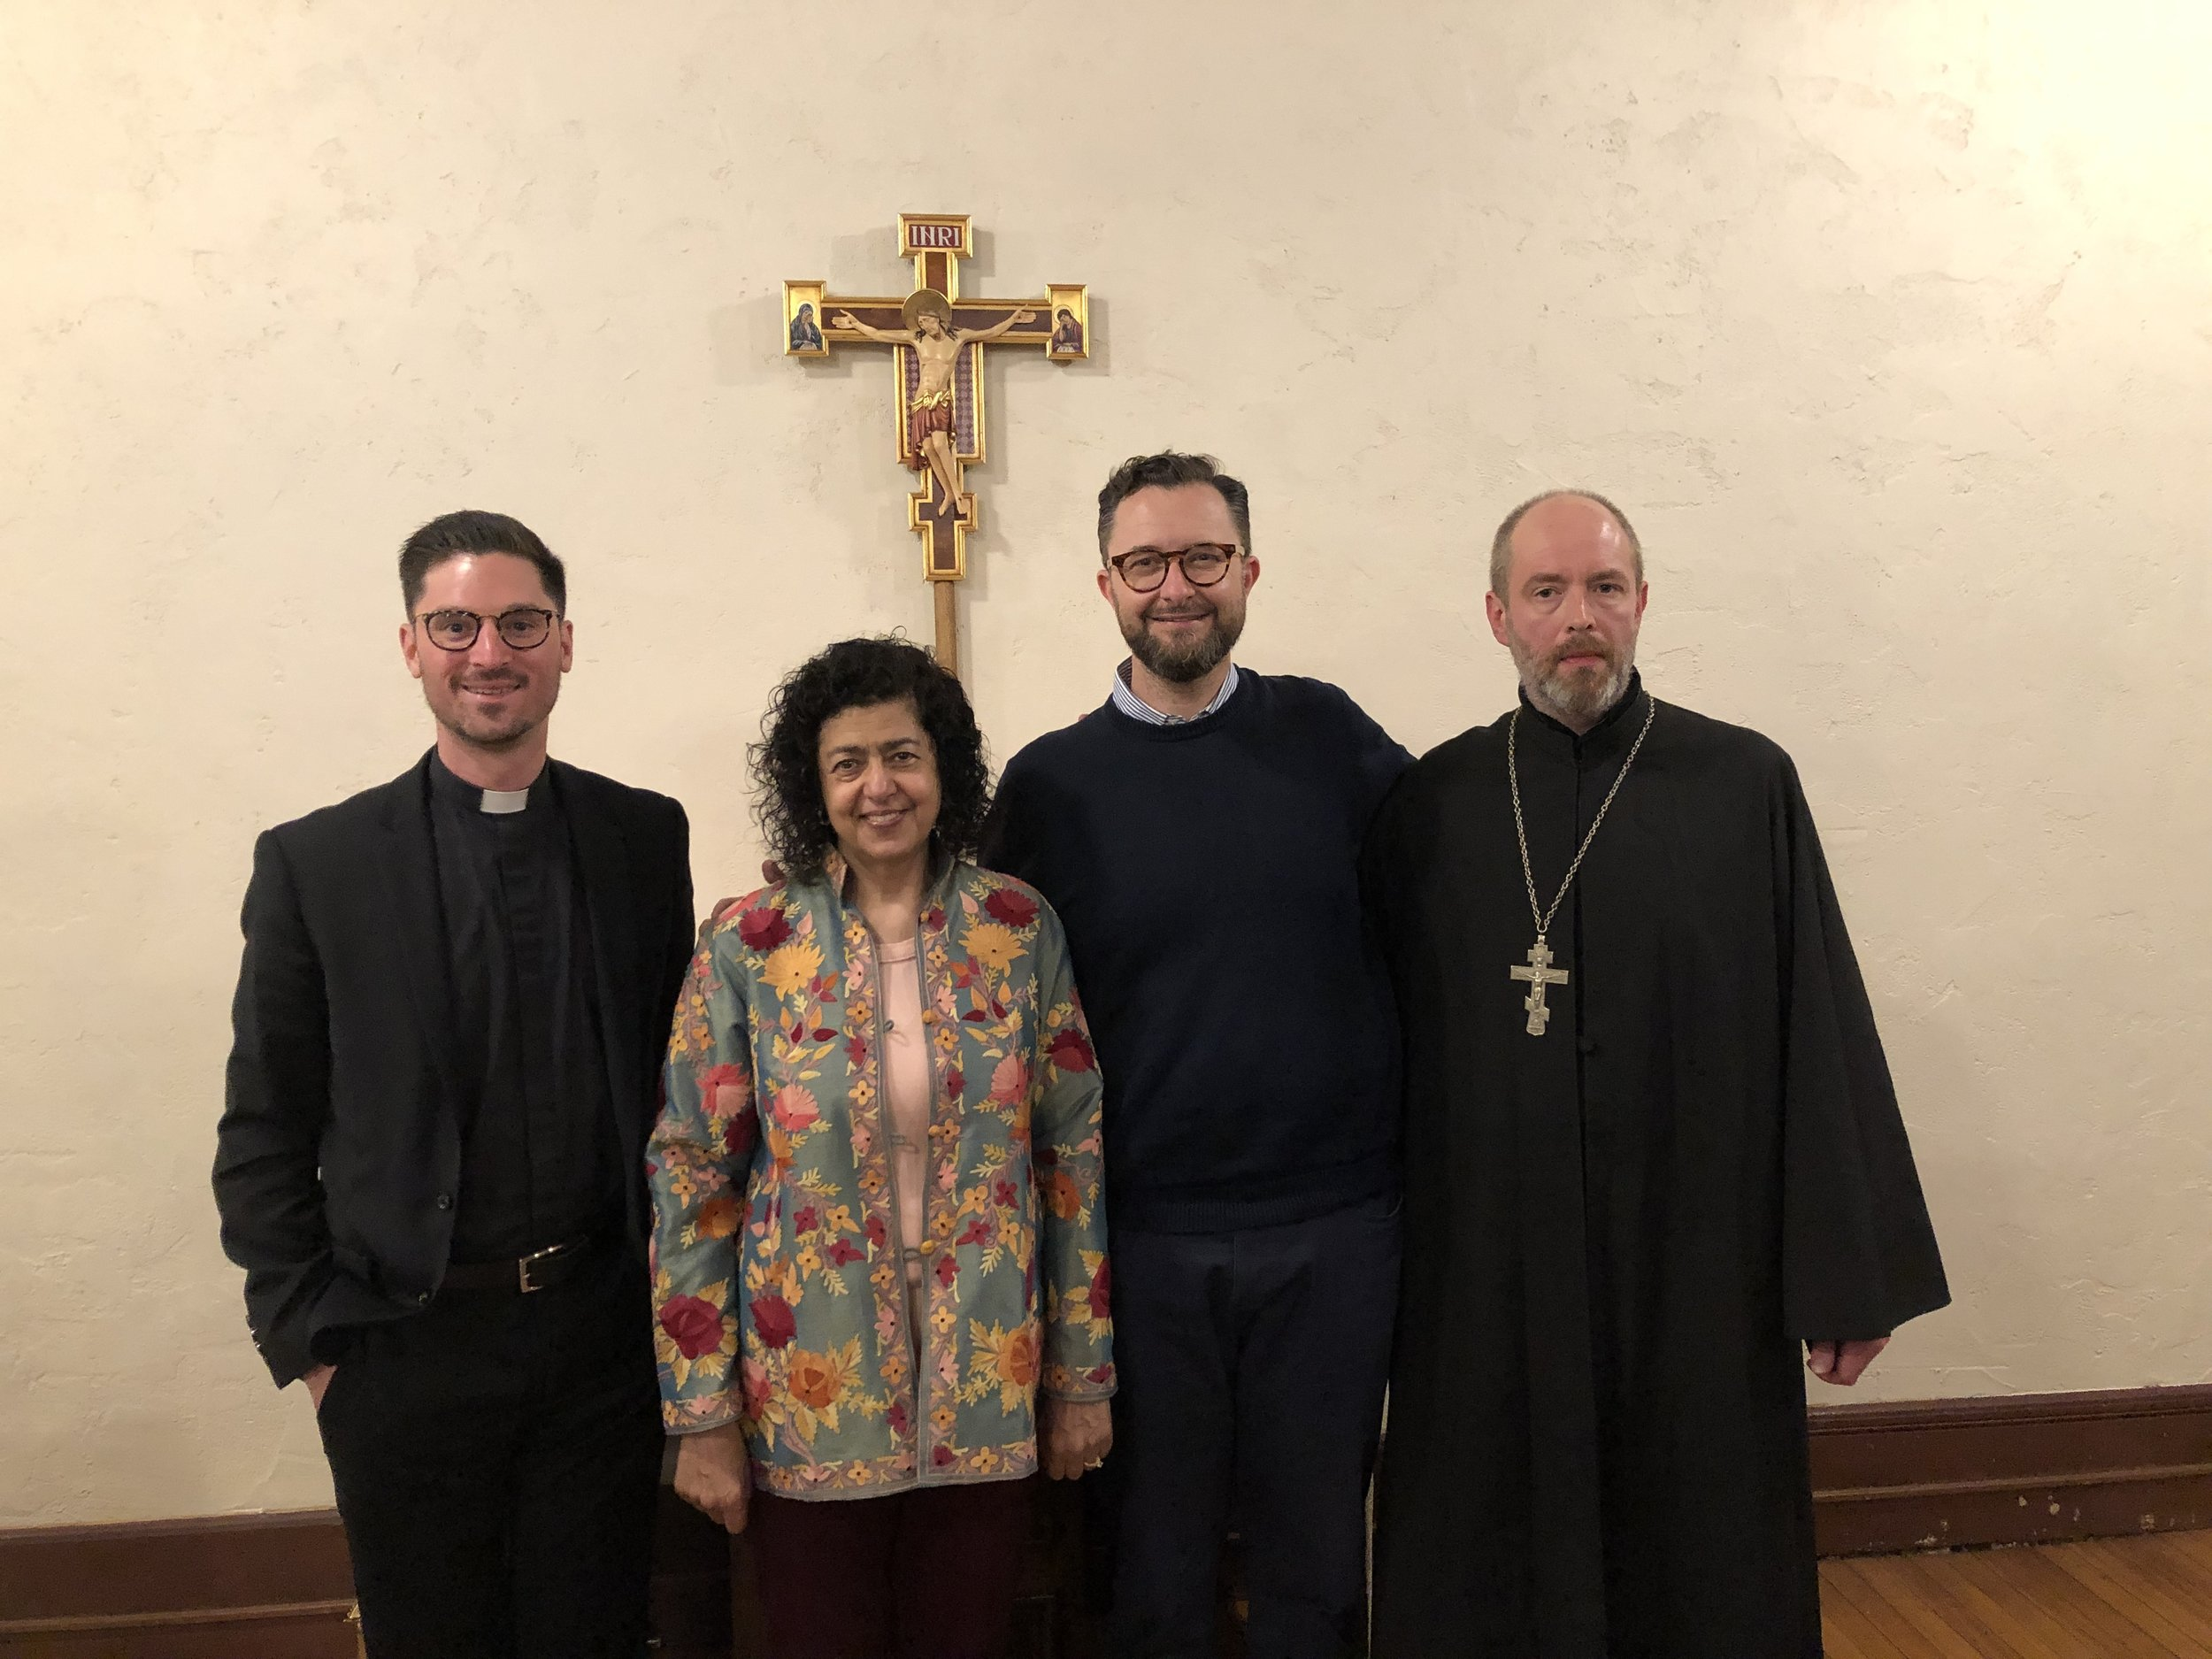 Rev. Zachary Thompson (St. James Episcopal church) Fr. Daniel Corrou (St. Francis Xavier church) & The Rev. Dr. Sergey Trostyanskiy (St. Gregory the Theologian church)